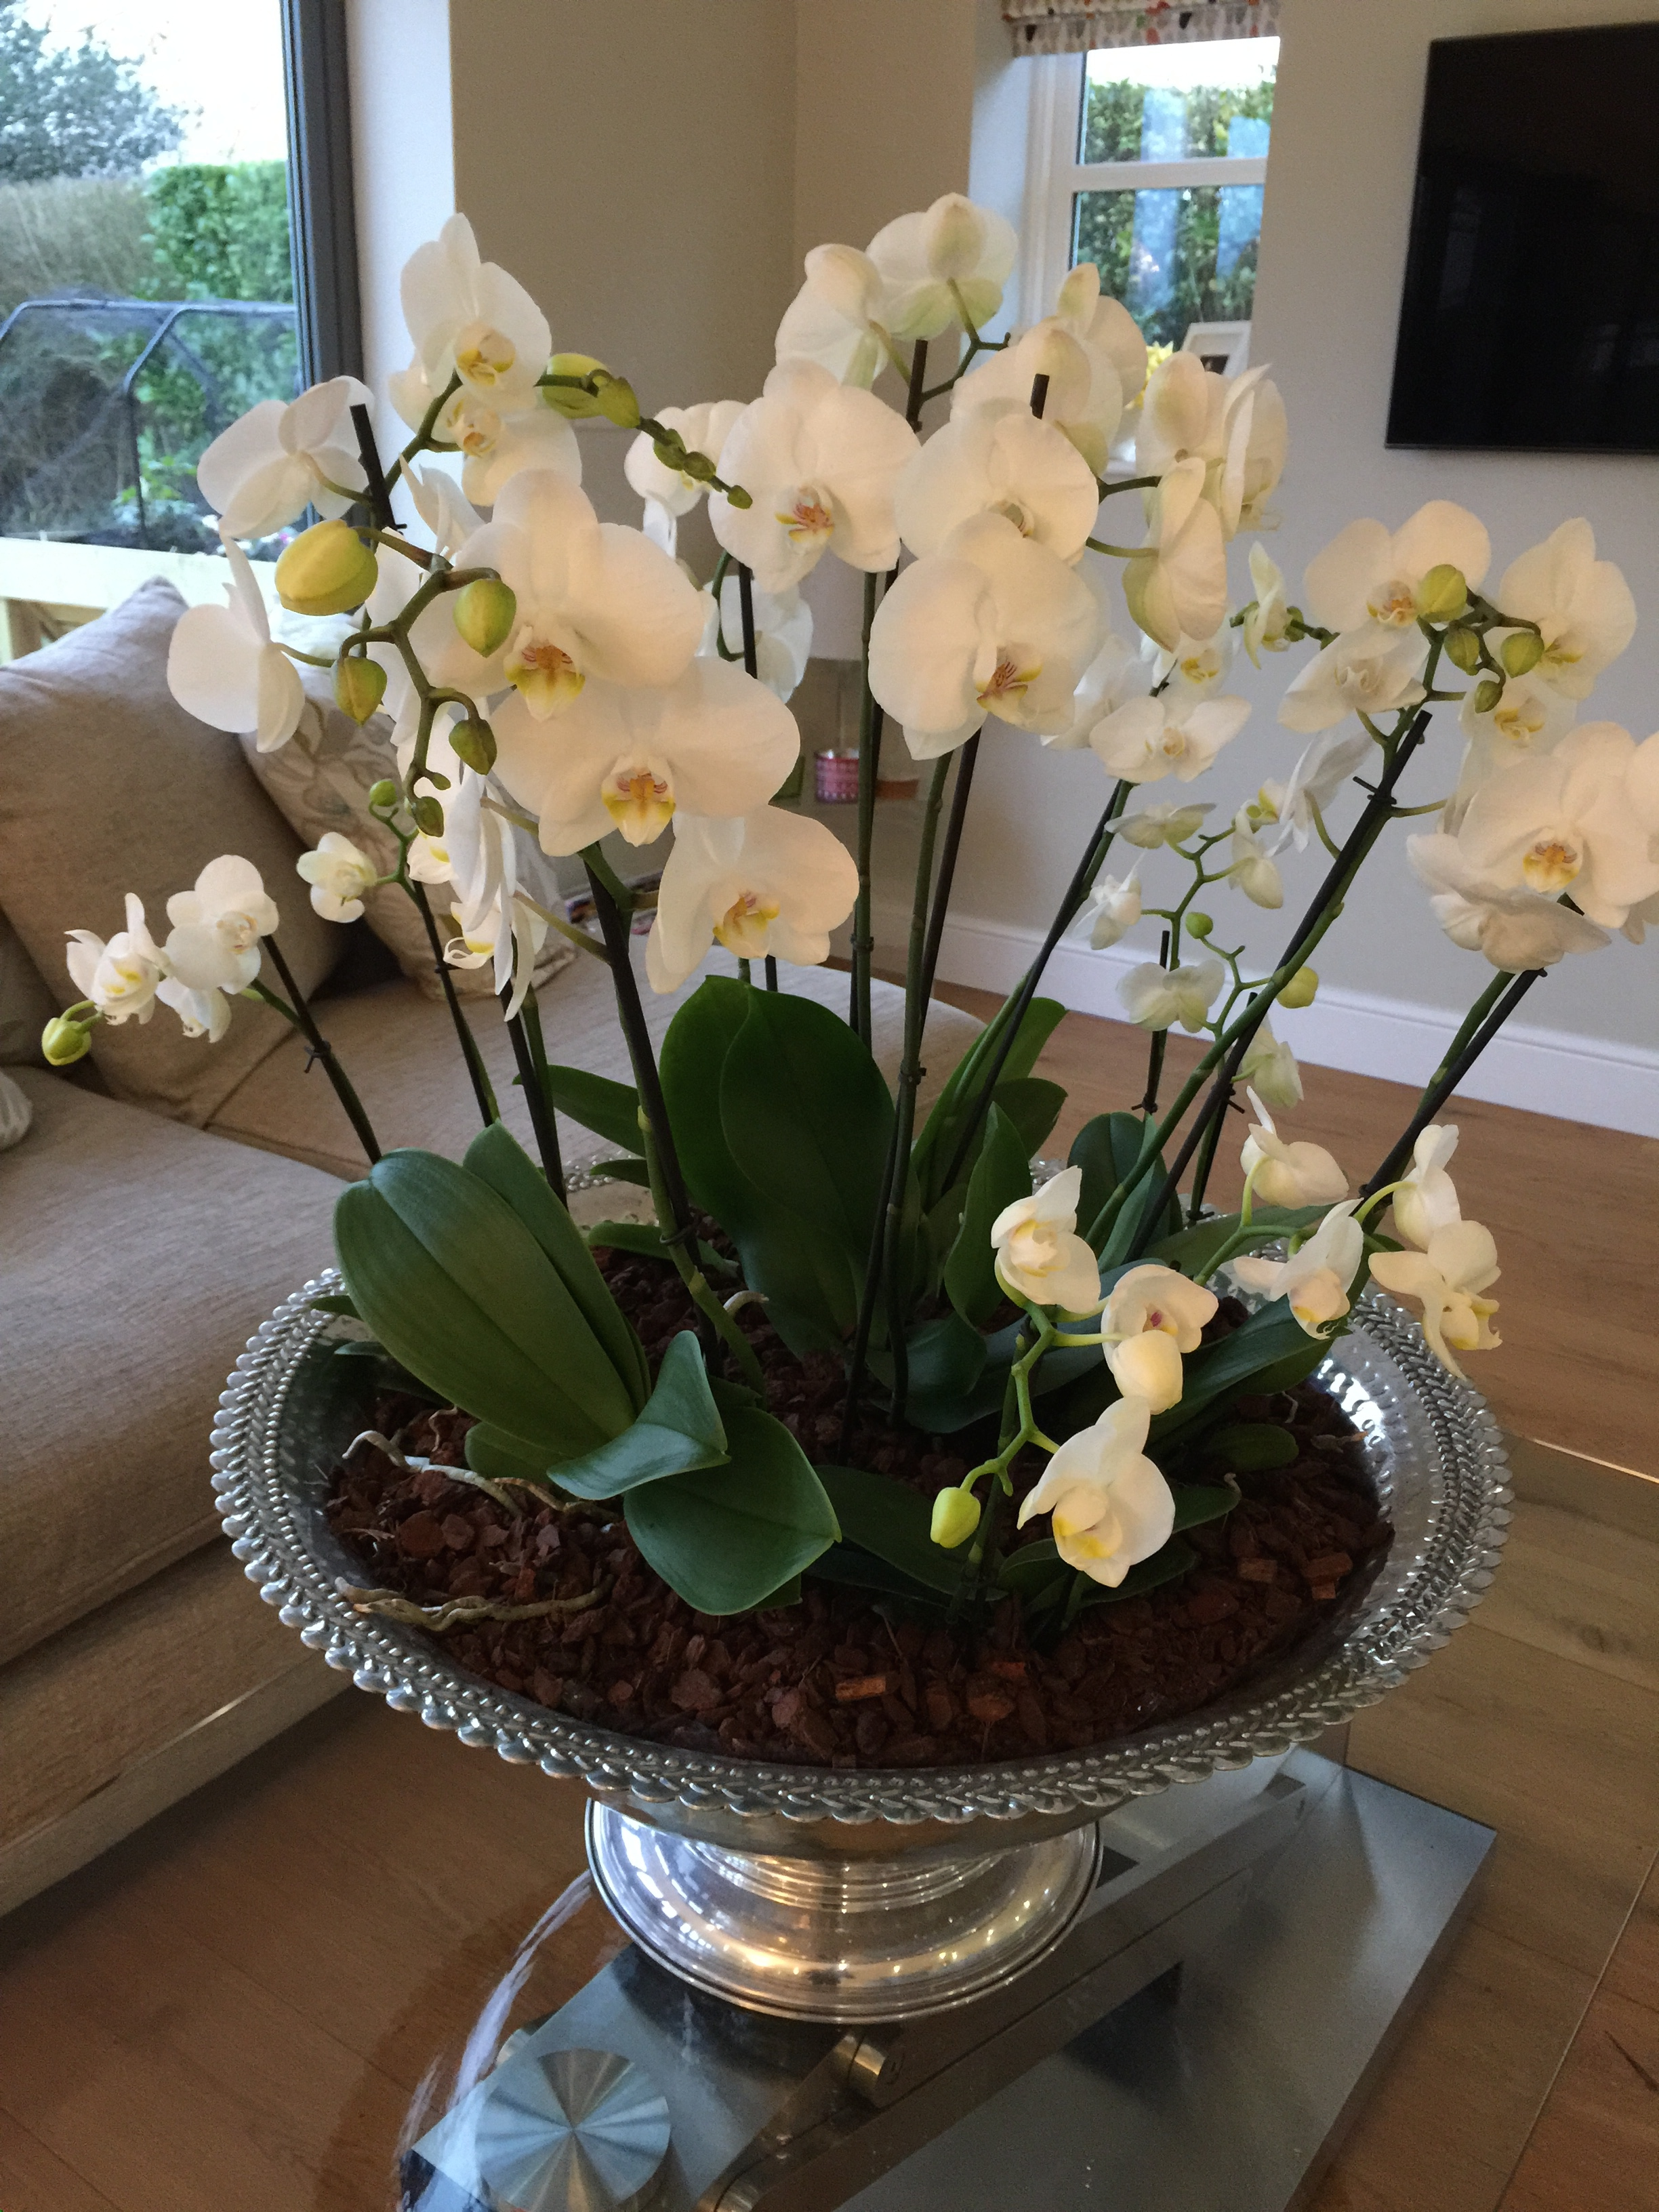 Planted Orchids